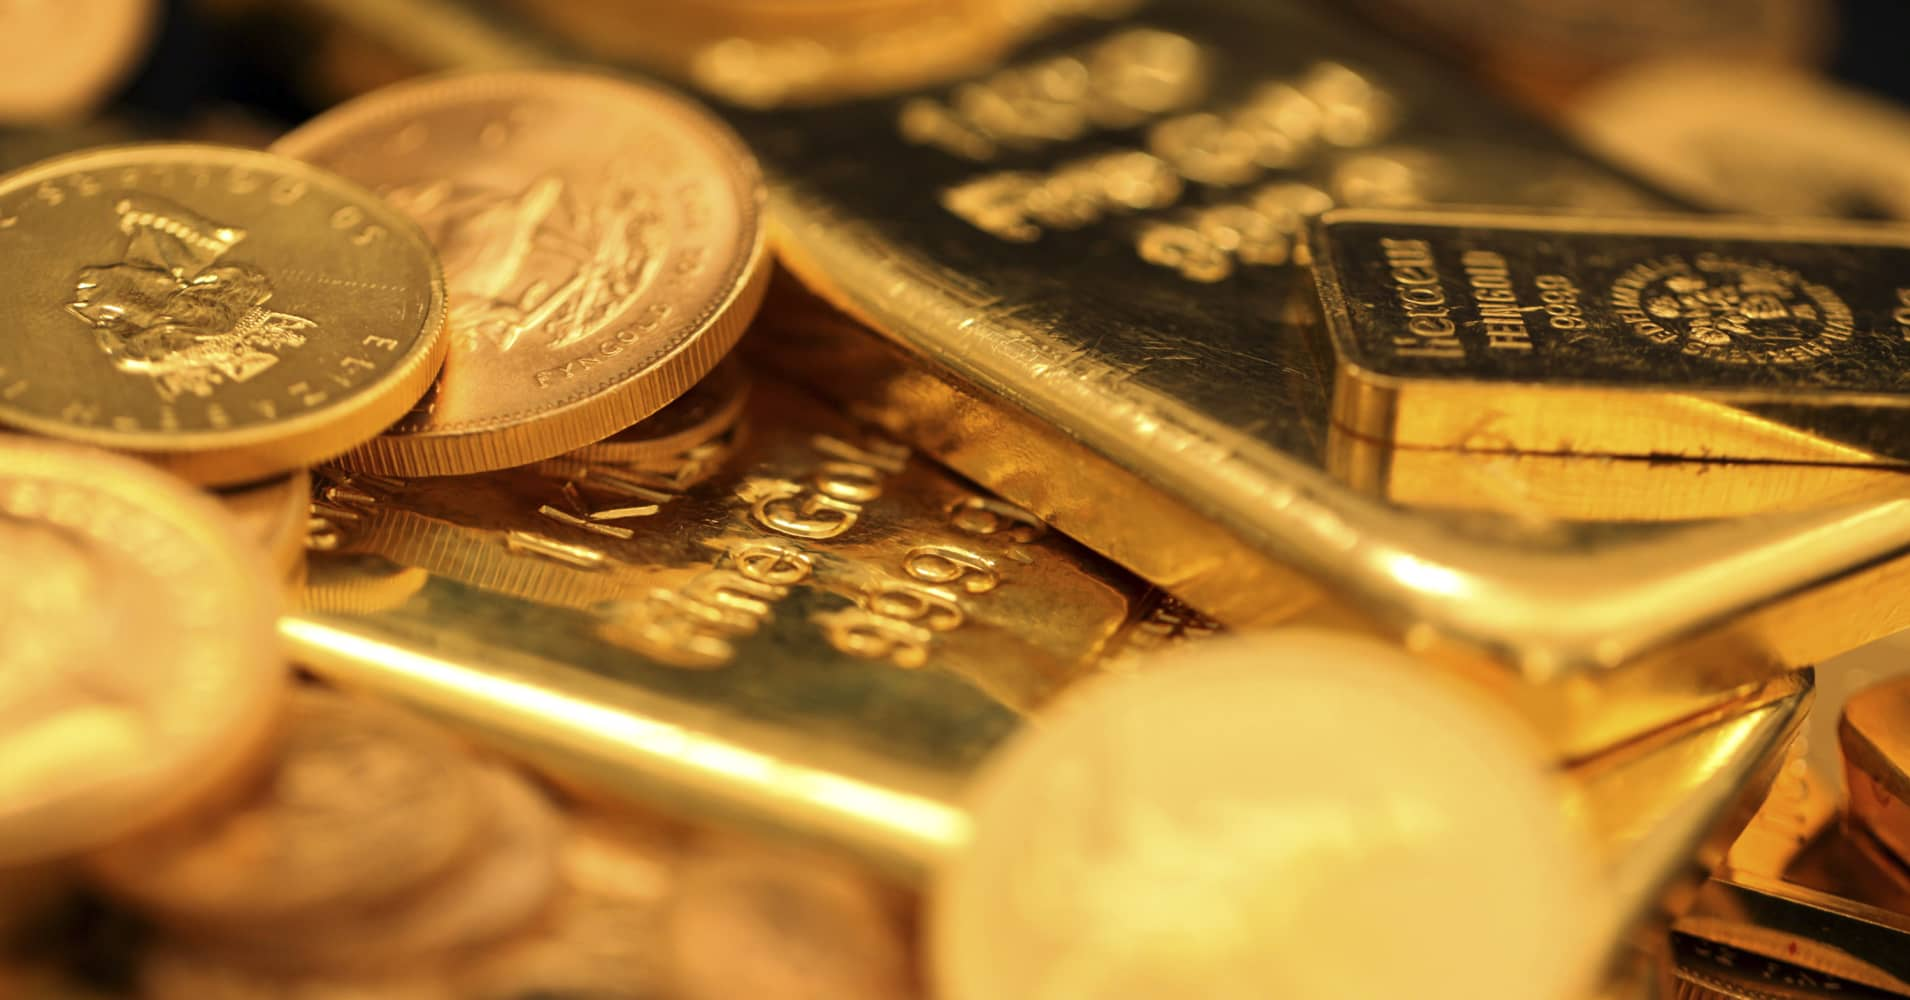 Physical Gold Might Be The Best Hedge Against Global Uncertainties But It S All About How You